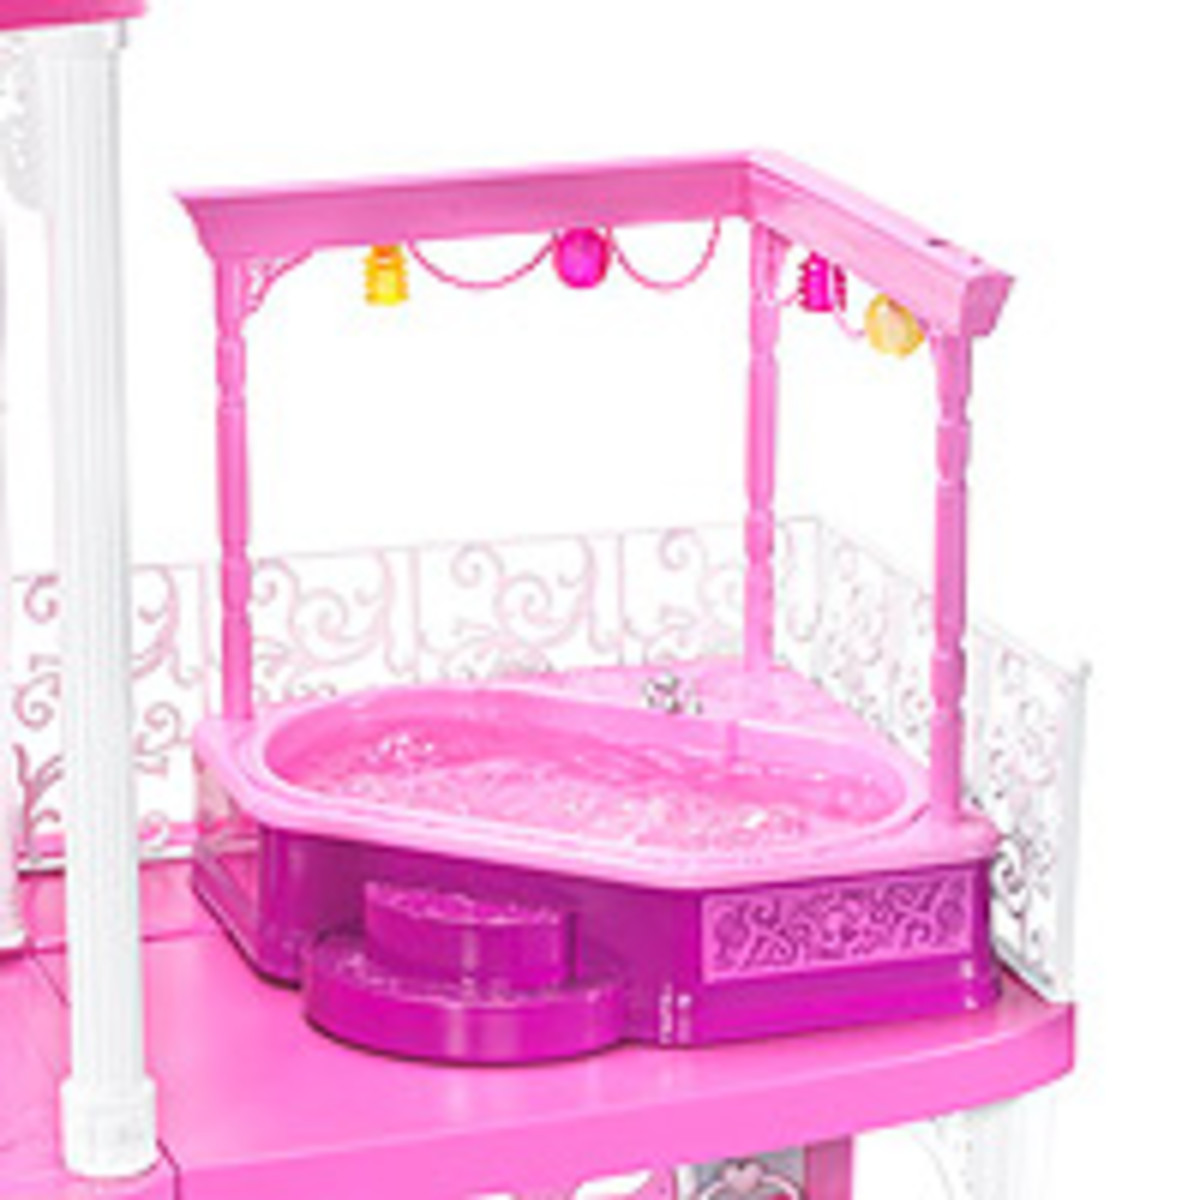 Barbie dollhouse would not be complete without the whirlpool that is on the third floor balcony. The perfect place to relax with friends.